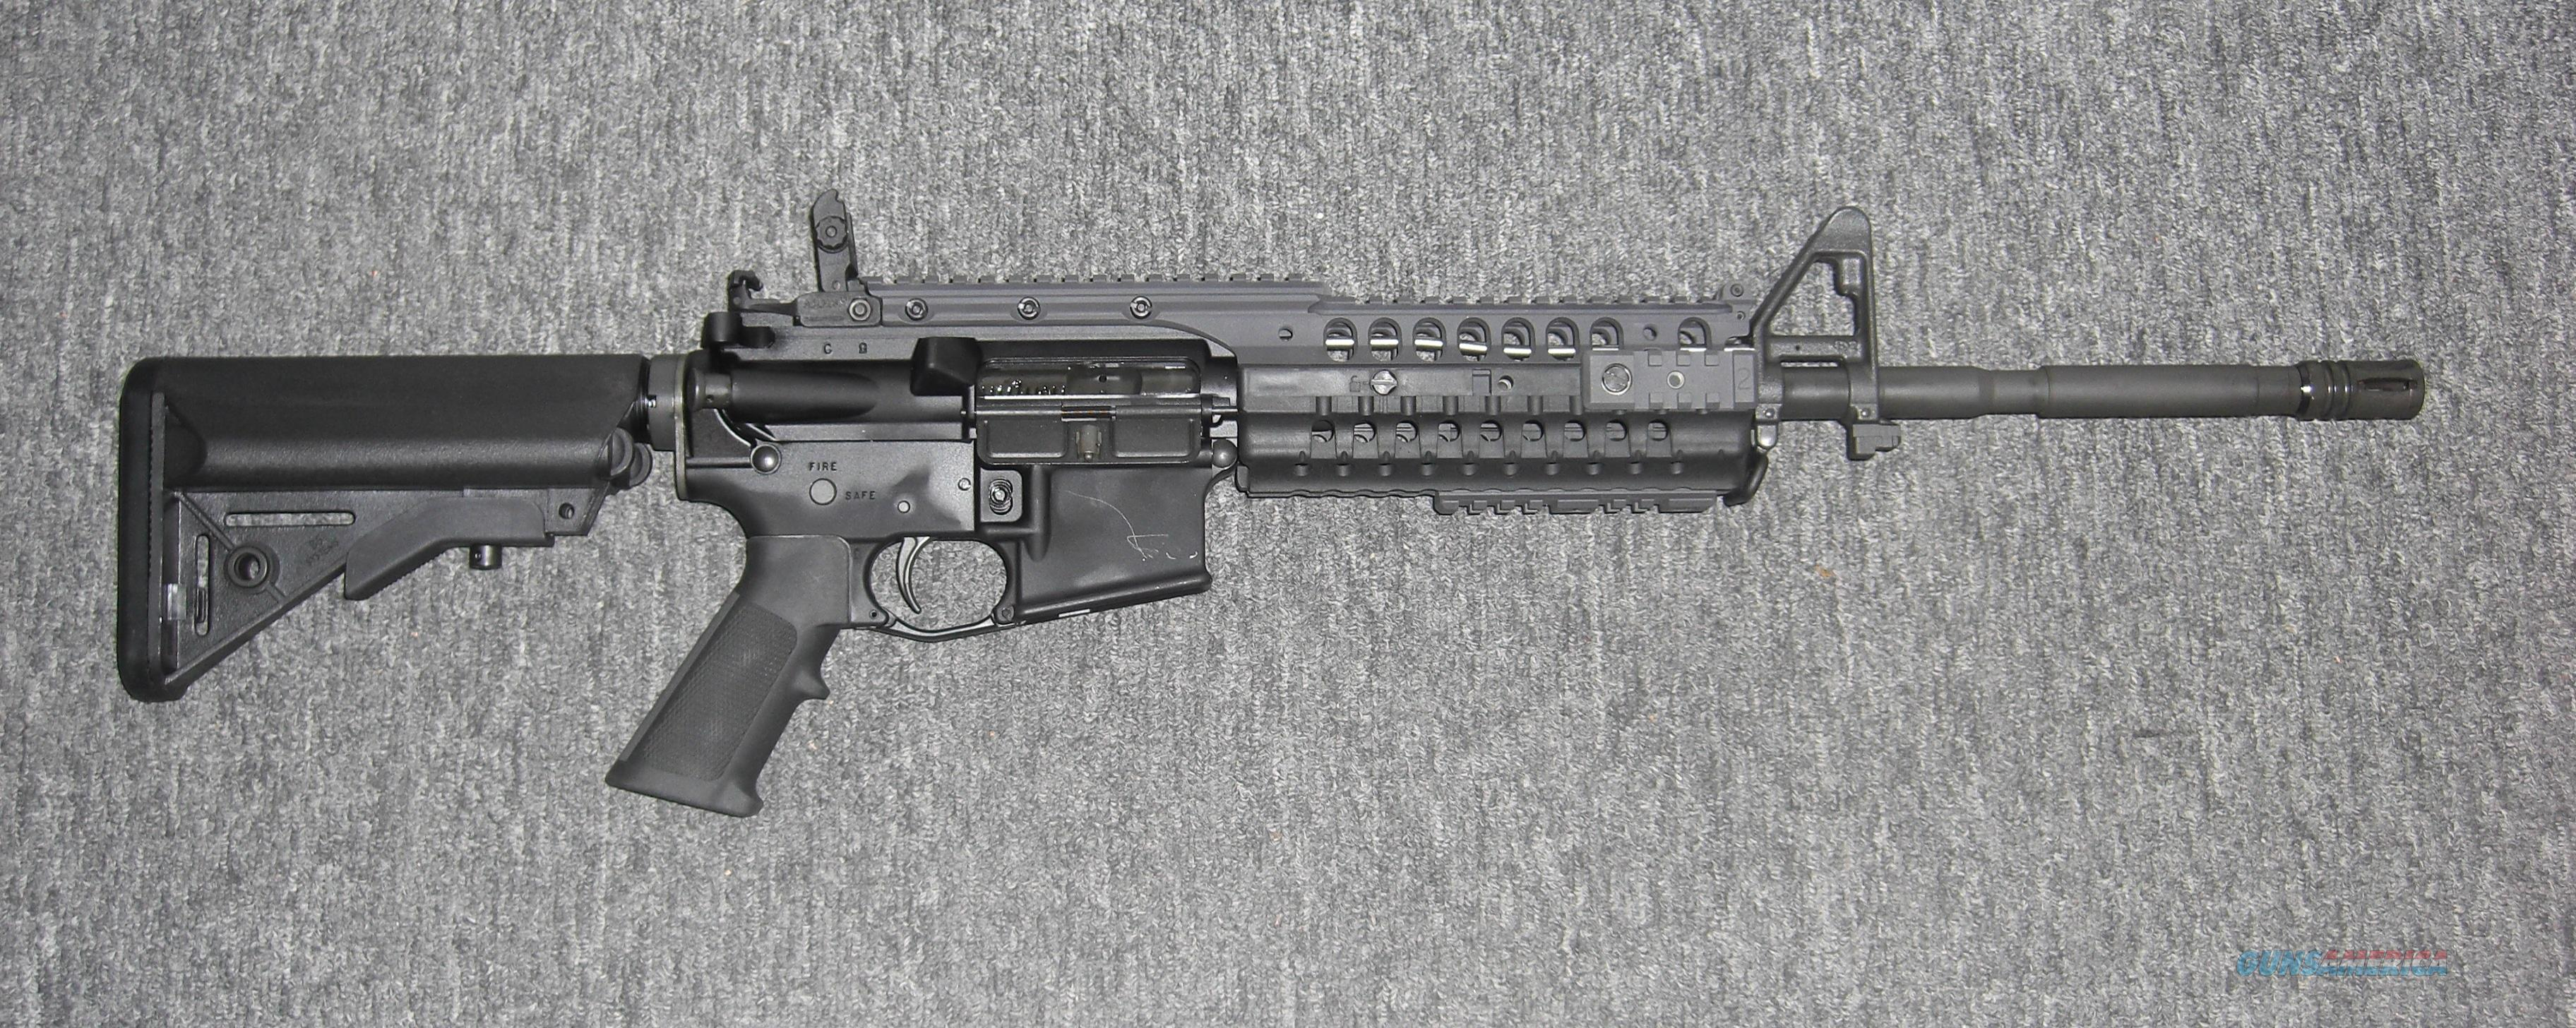 M4 Carbine Custom (LE6920)  Guns > Rifles > Colt Military/Tactical Rifles